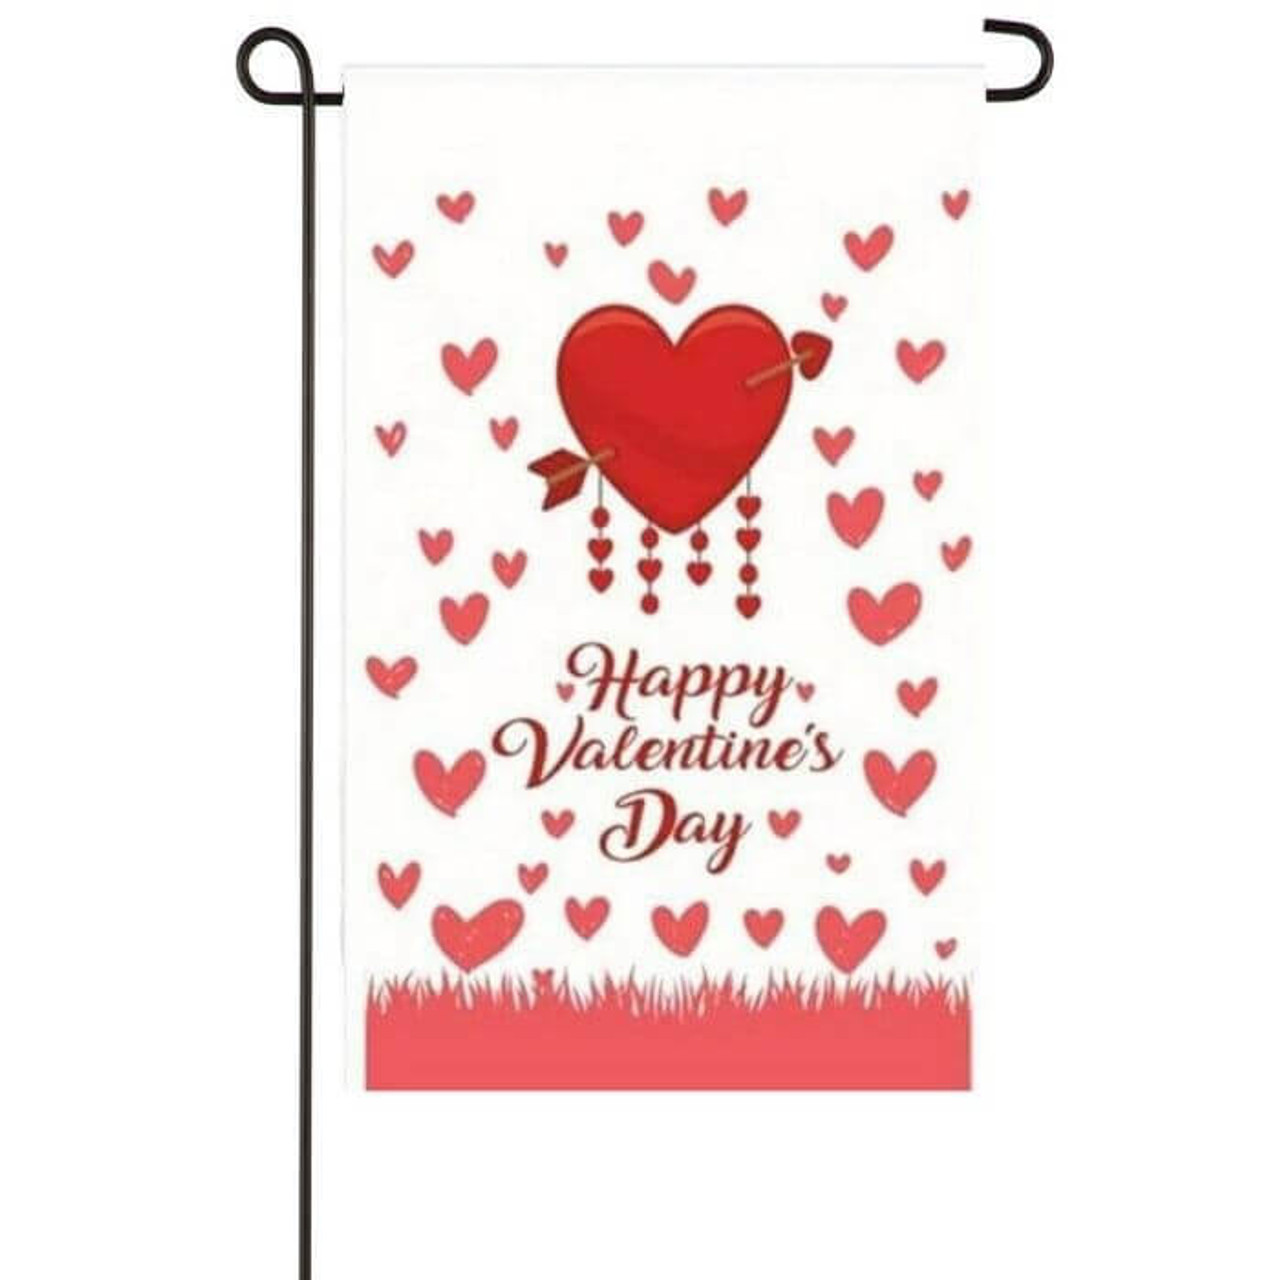 """This garden flag has a white background with small pink hearts throughout. In the center is a red heart with an arrow through it and underneath is says """"Happy Valentine's Day"""" in a script-like font in red."""